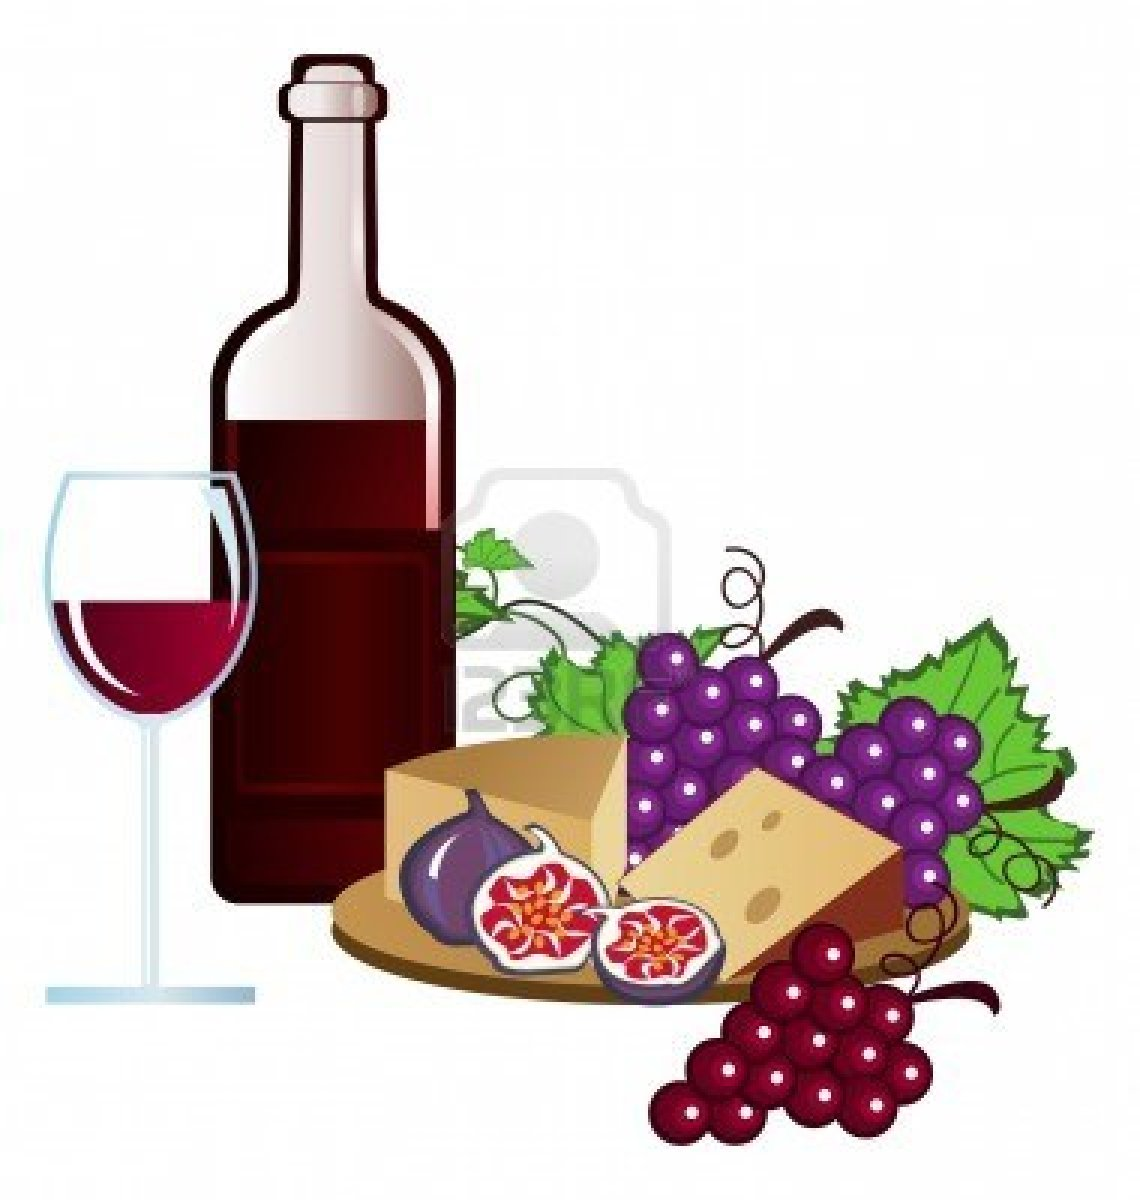 hight resolution of wine clipart images clipartfest